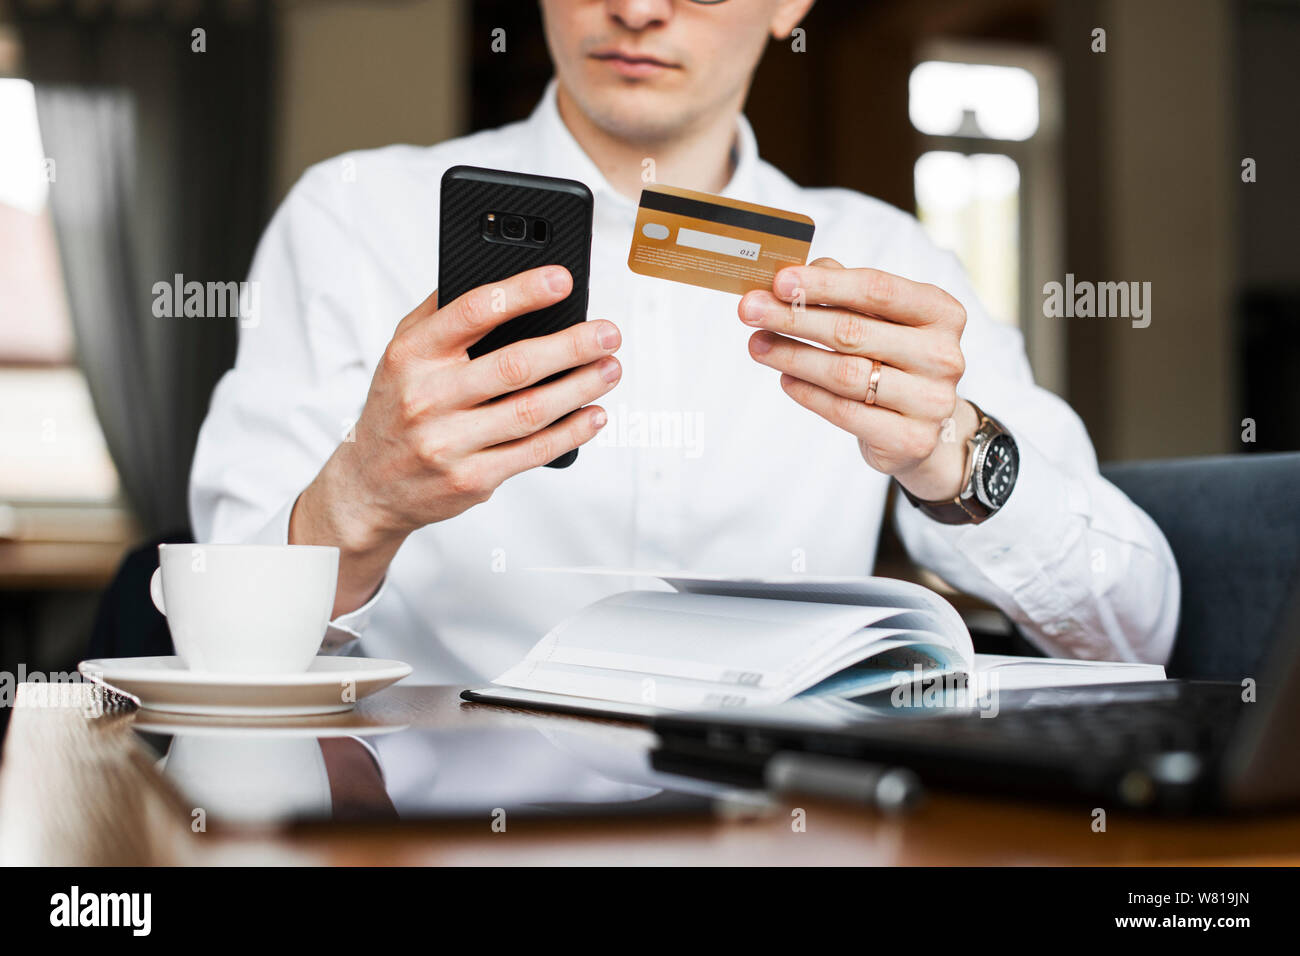 Crop male hands using a smartphone and a gold credit card sitting in a coffee shop . Stock Photo